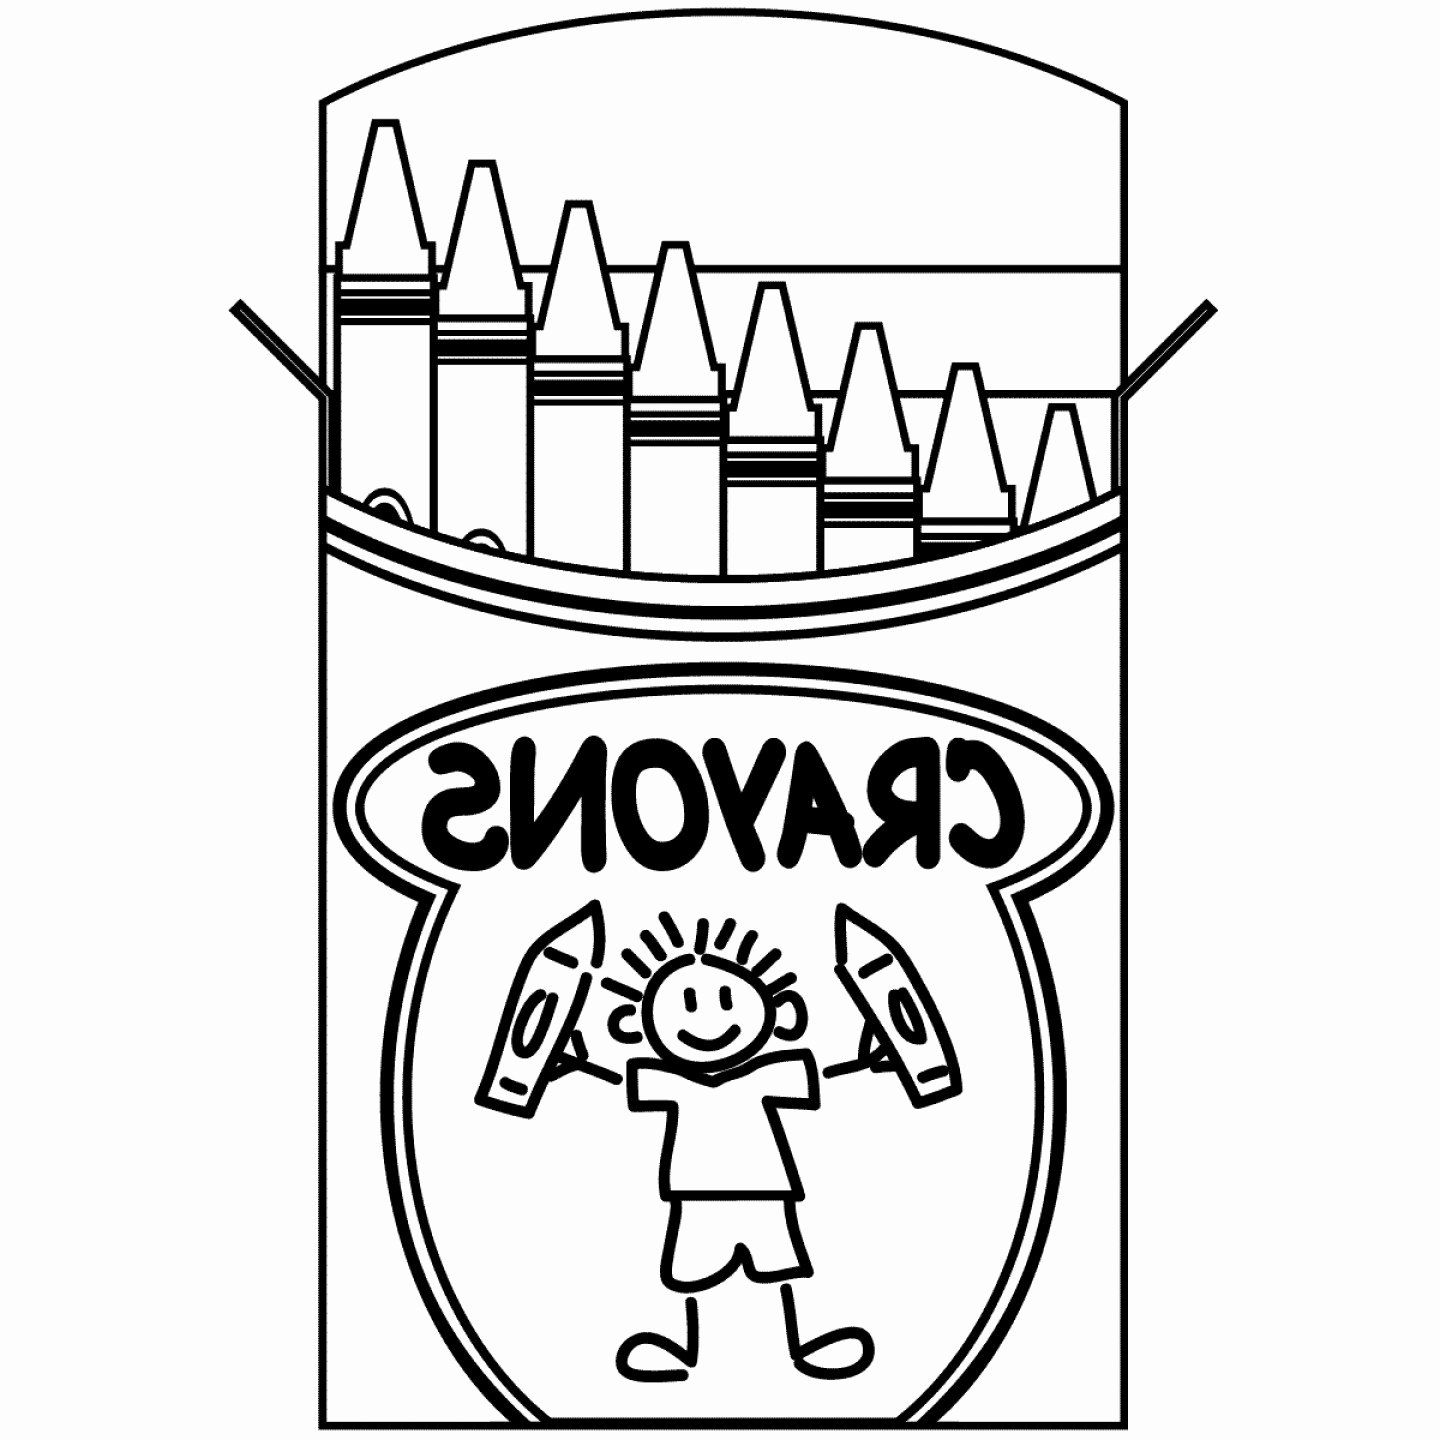 27 Coloring Books And Crayons School Coloring Pages Coloring